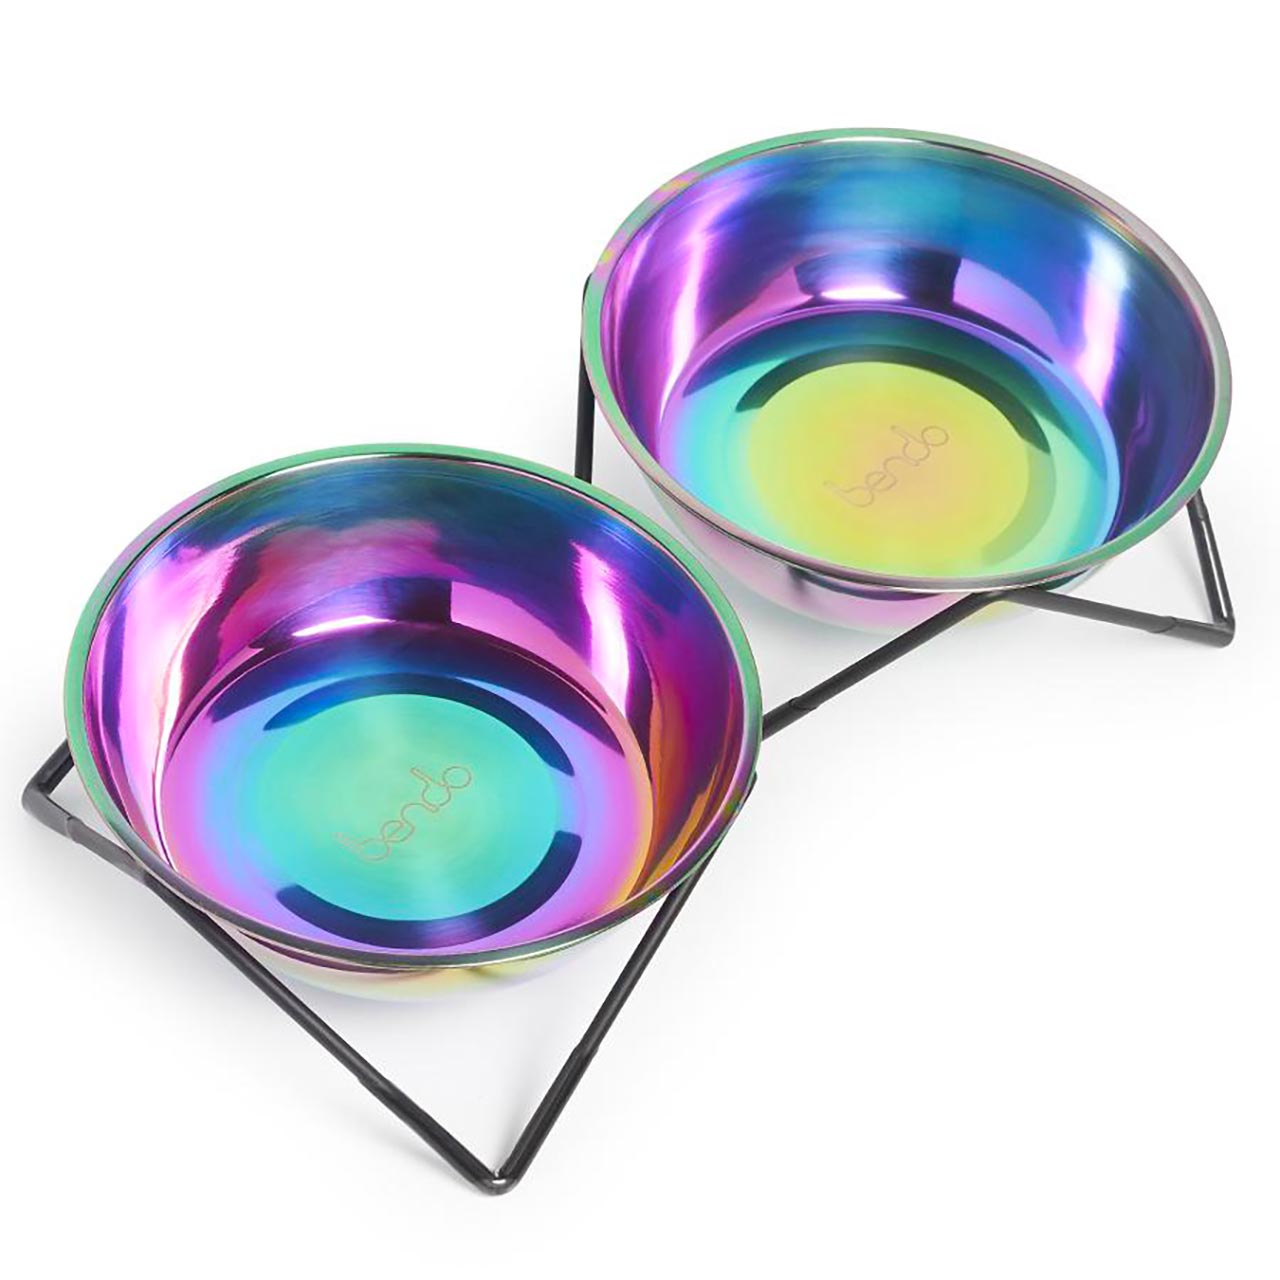 Bendo WOOF WOOF double dog bowl iridescent on black stand   the design gift shop